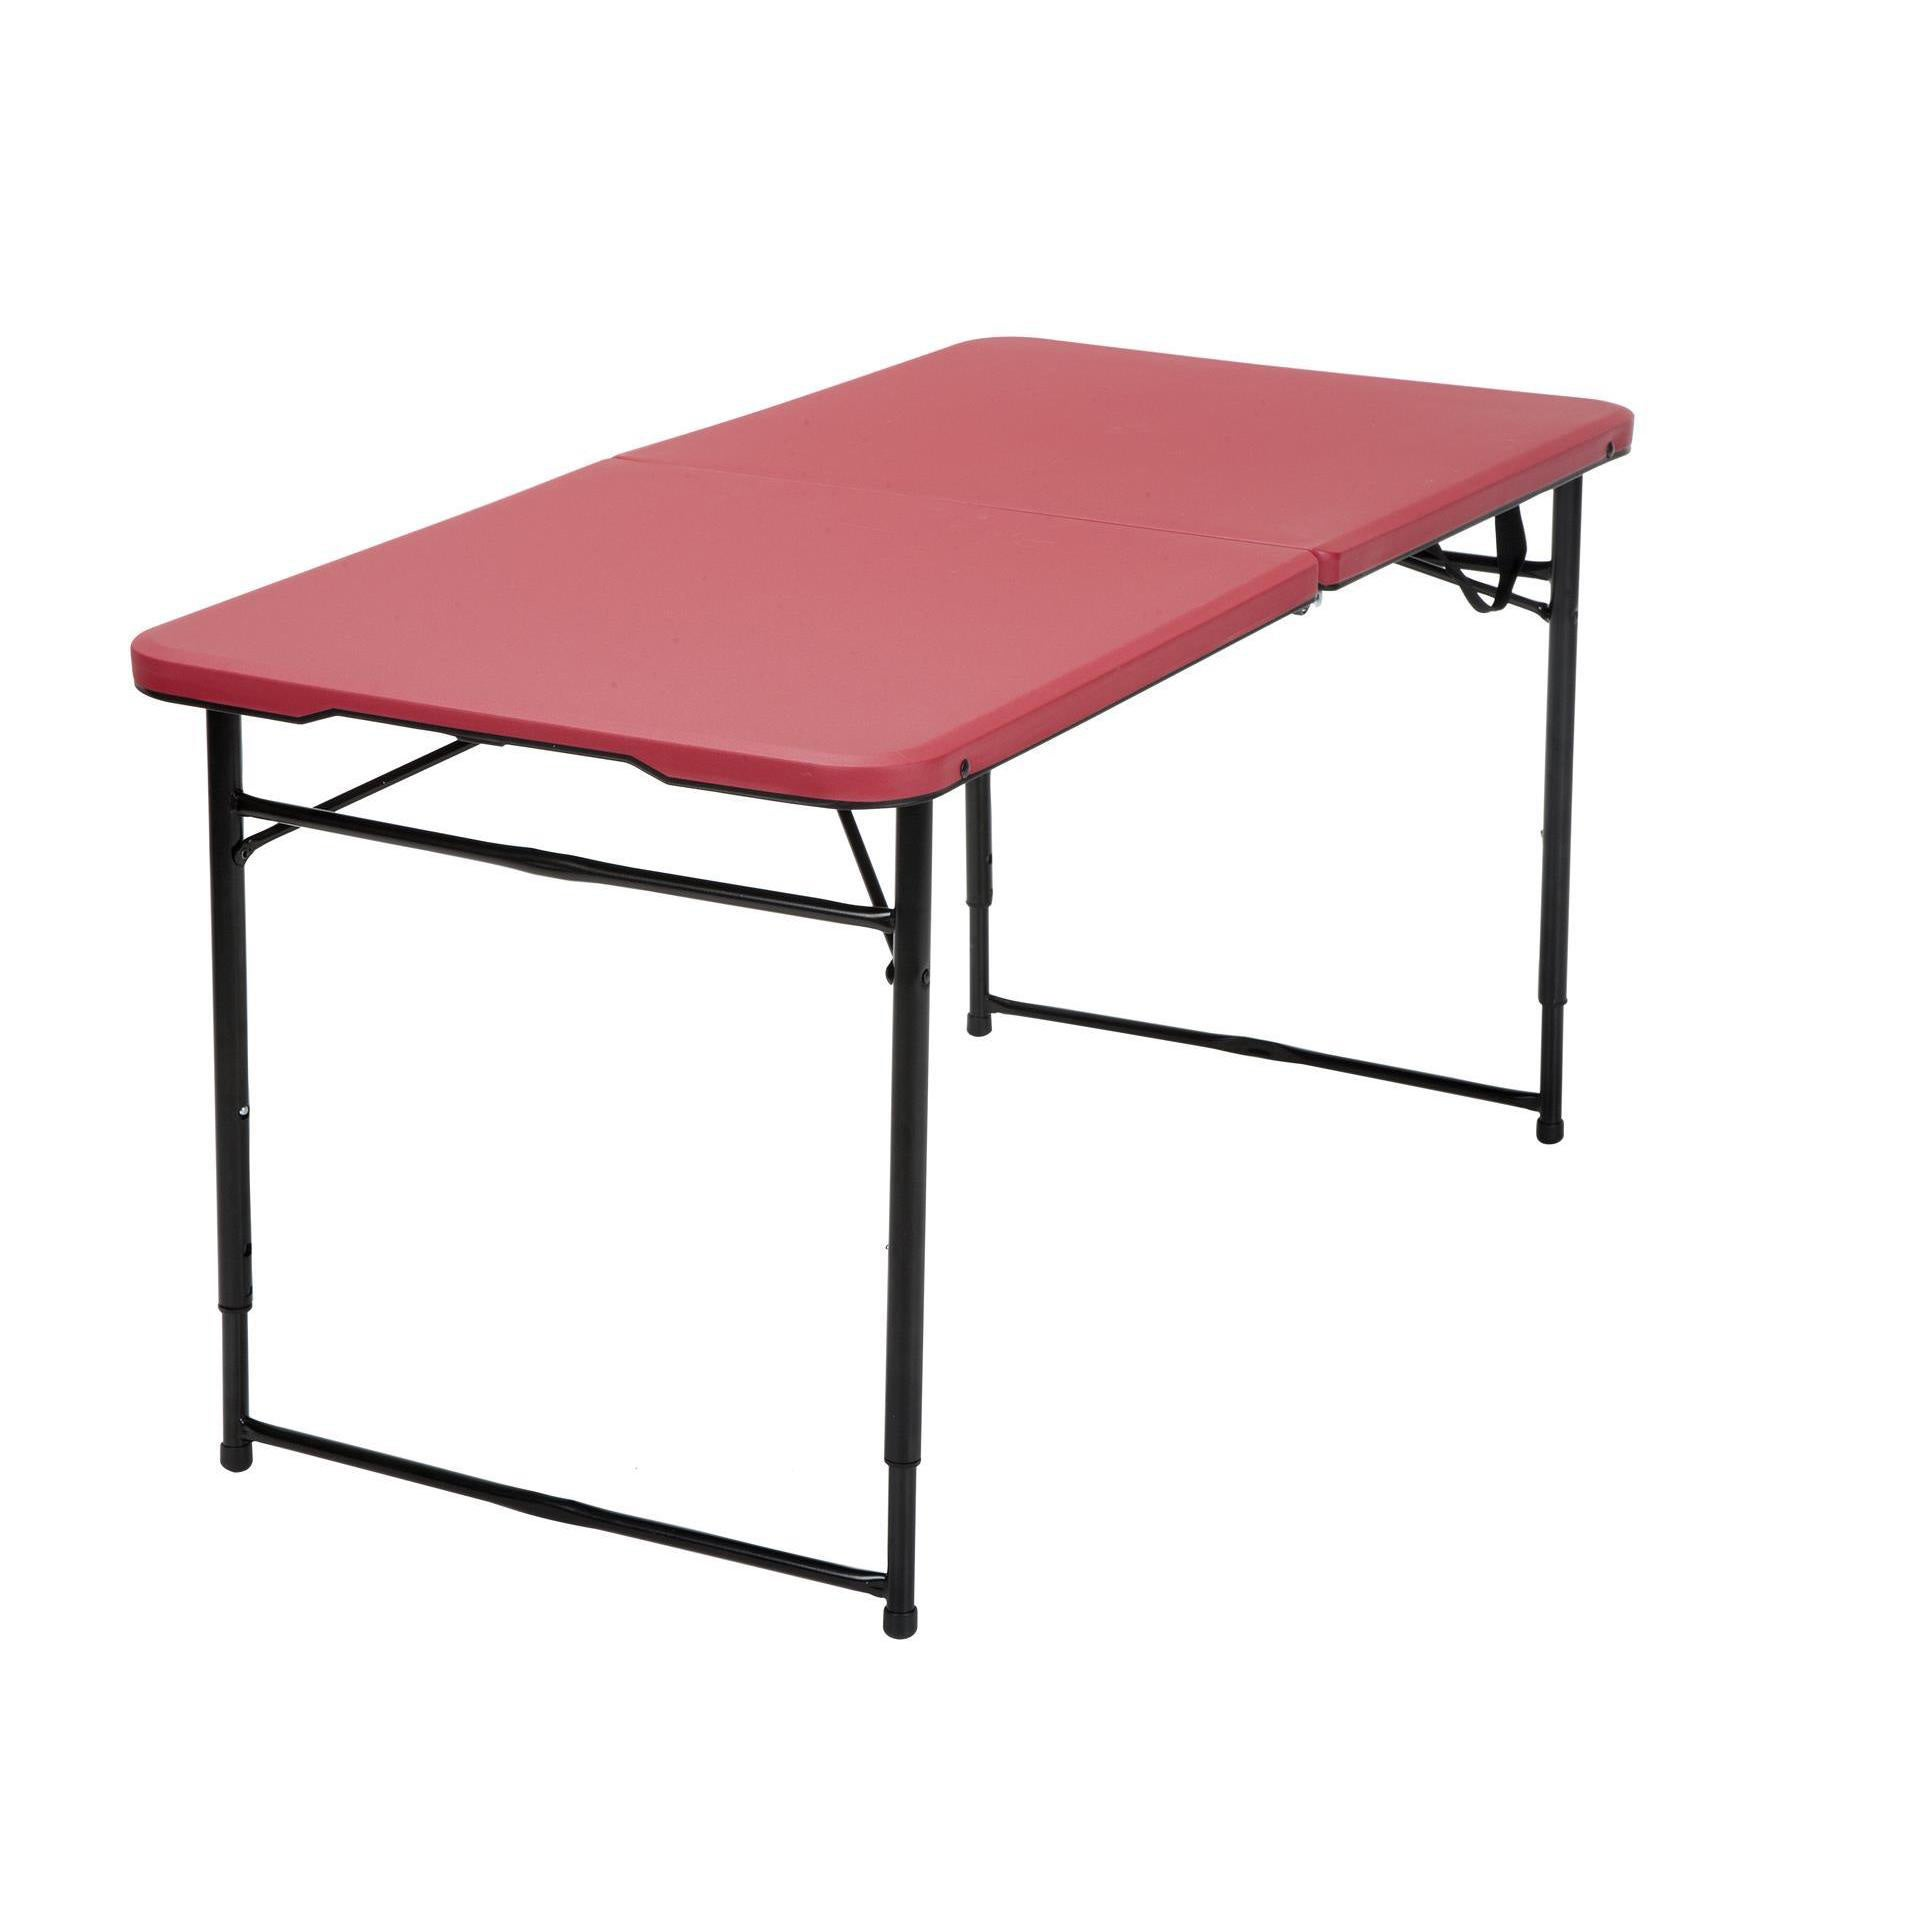 Folding Table With Handle.Cosco 4 Ft Indoor Outdoor Adjustable Height Center Fold Tailgate Table With Carrying Handle